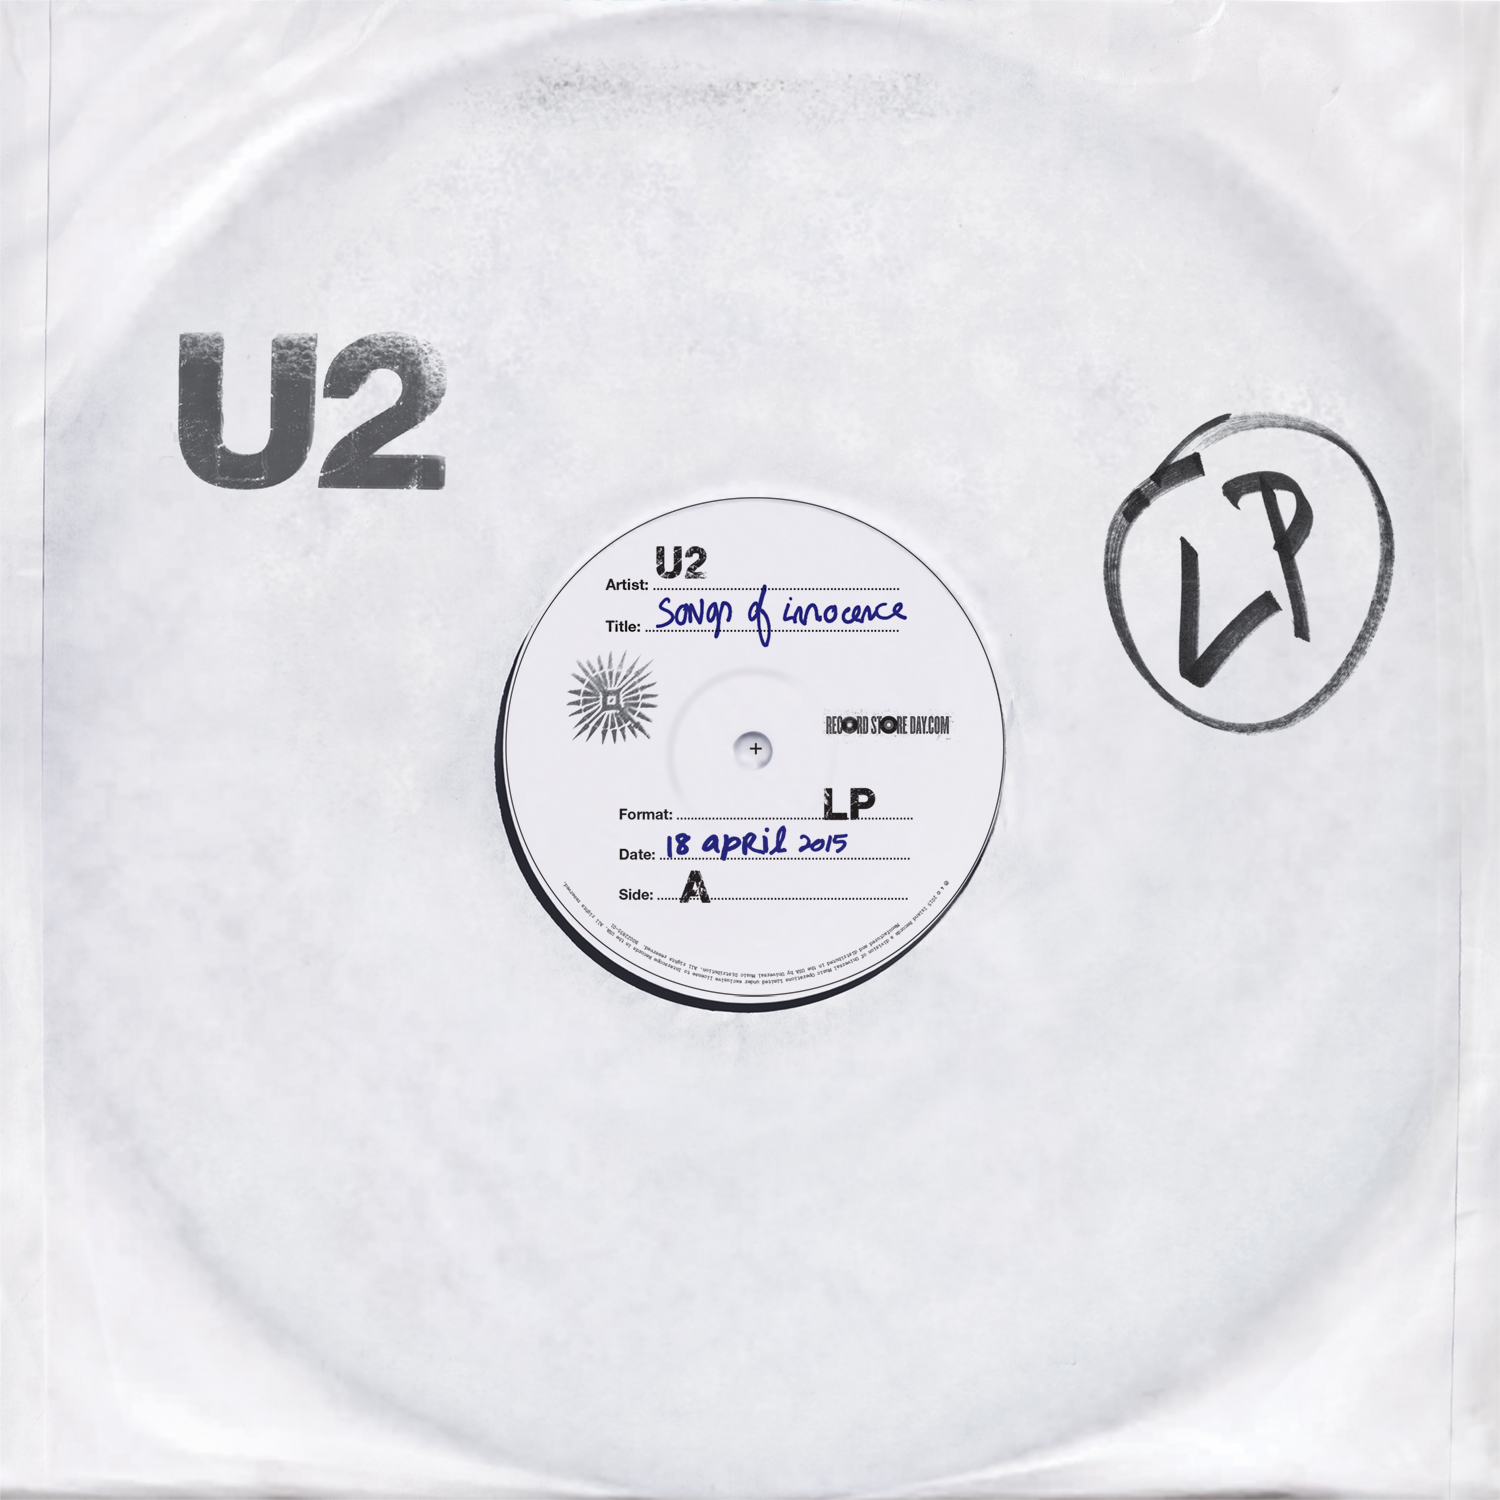 U2 - Songs of Innocence (Record Store Day Deluxe Exclusive Vinyl)